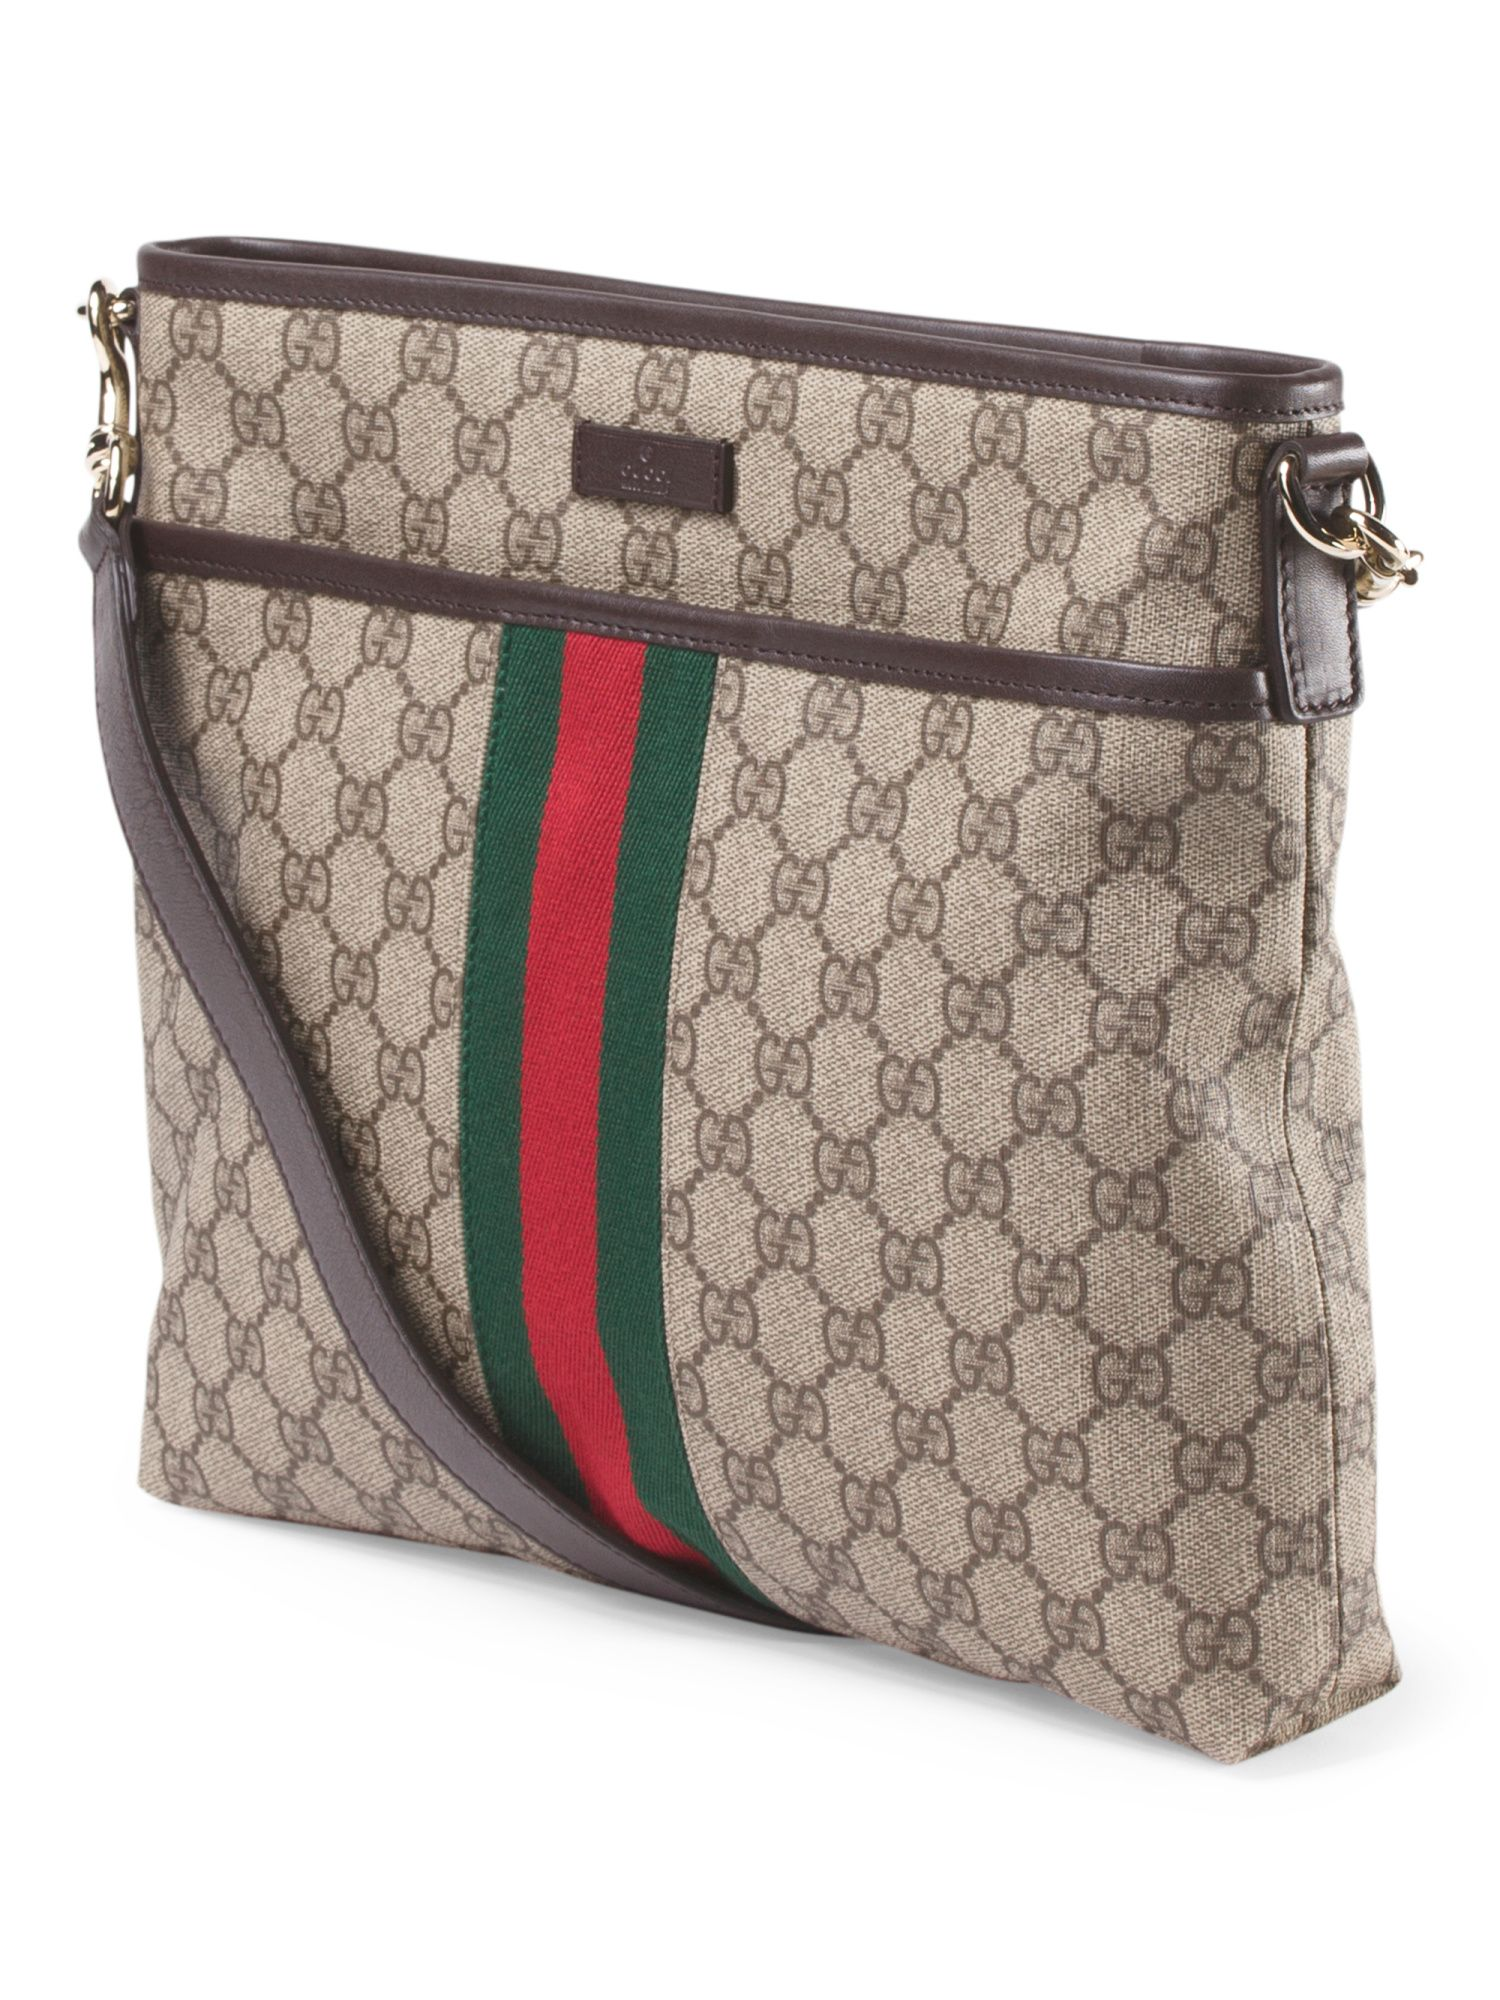 224be21f67c2 ... e961d4600b3 Made In Italy Canvas Leather Logo Crossbody - Crossbody Bags  - T.J. ... 20e257daa76 GUCCI.